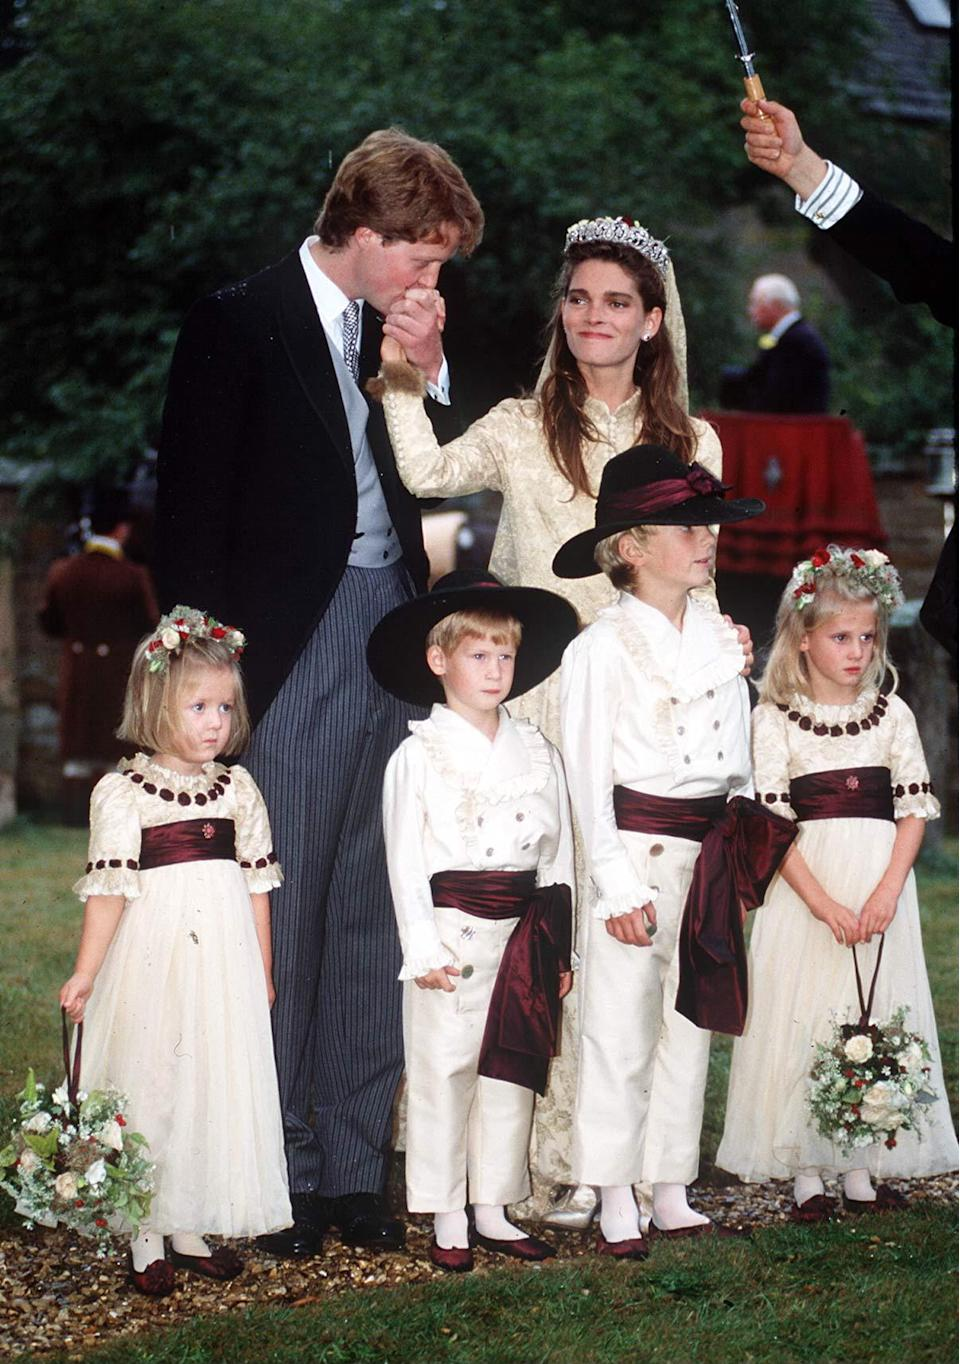 In 1989, Earl Charles Spencer's wife Victoria Lockwood wore the Spencer tiara when she walked down the aisle. Photo: Getty Images